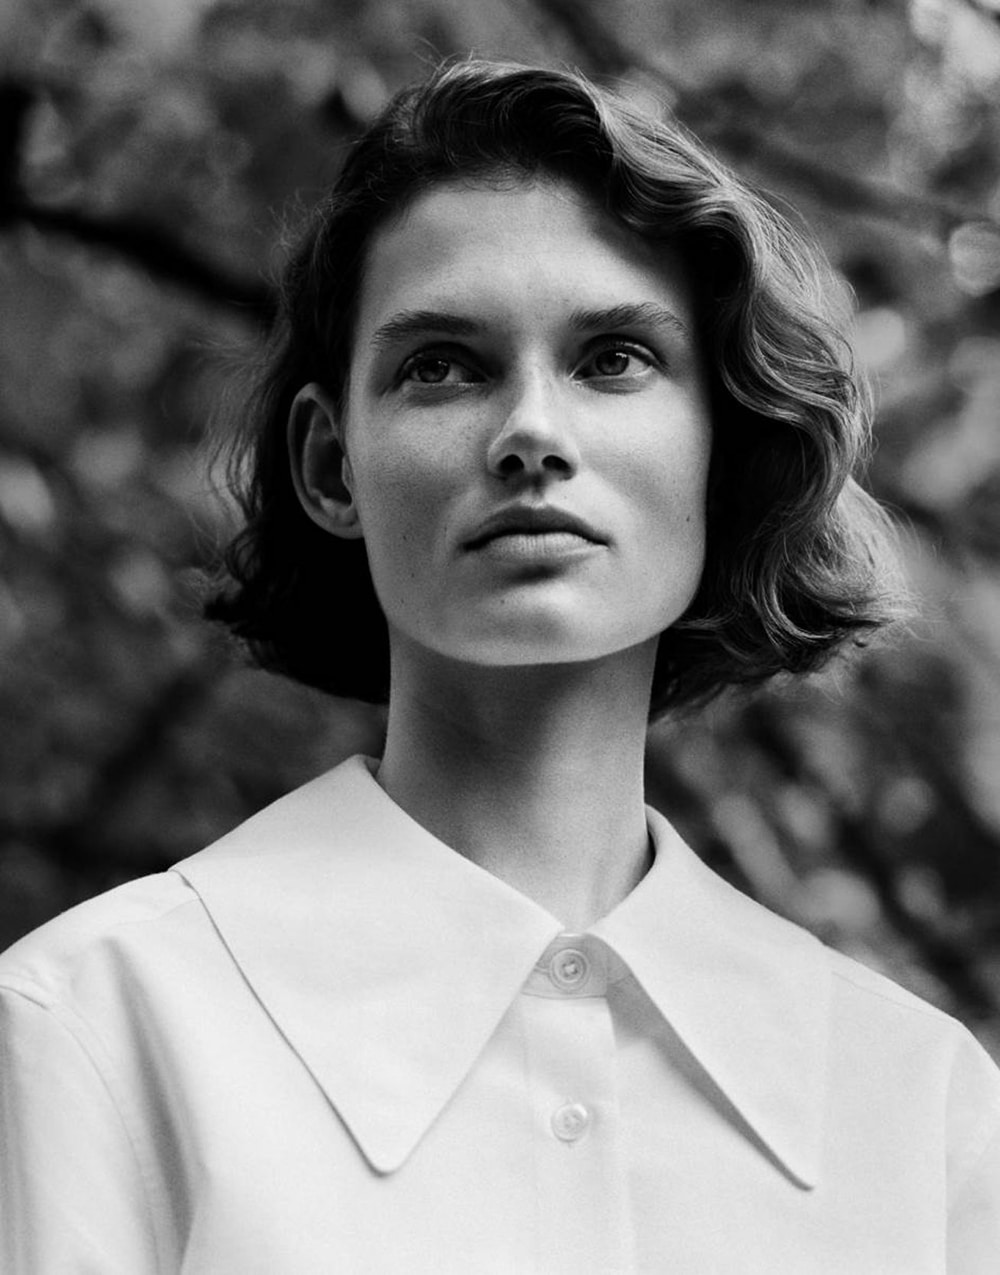 Giedre Dukauskaite by Alasdair McLellan for Margaret Howell Spring Summer 2018 Ad Campaign